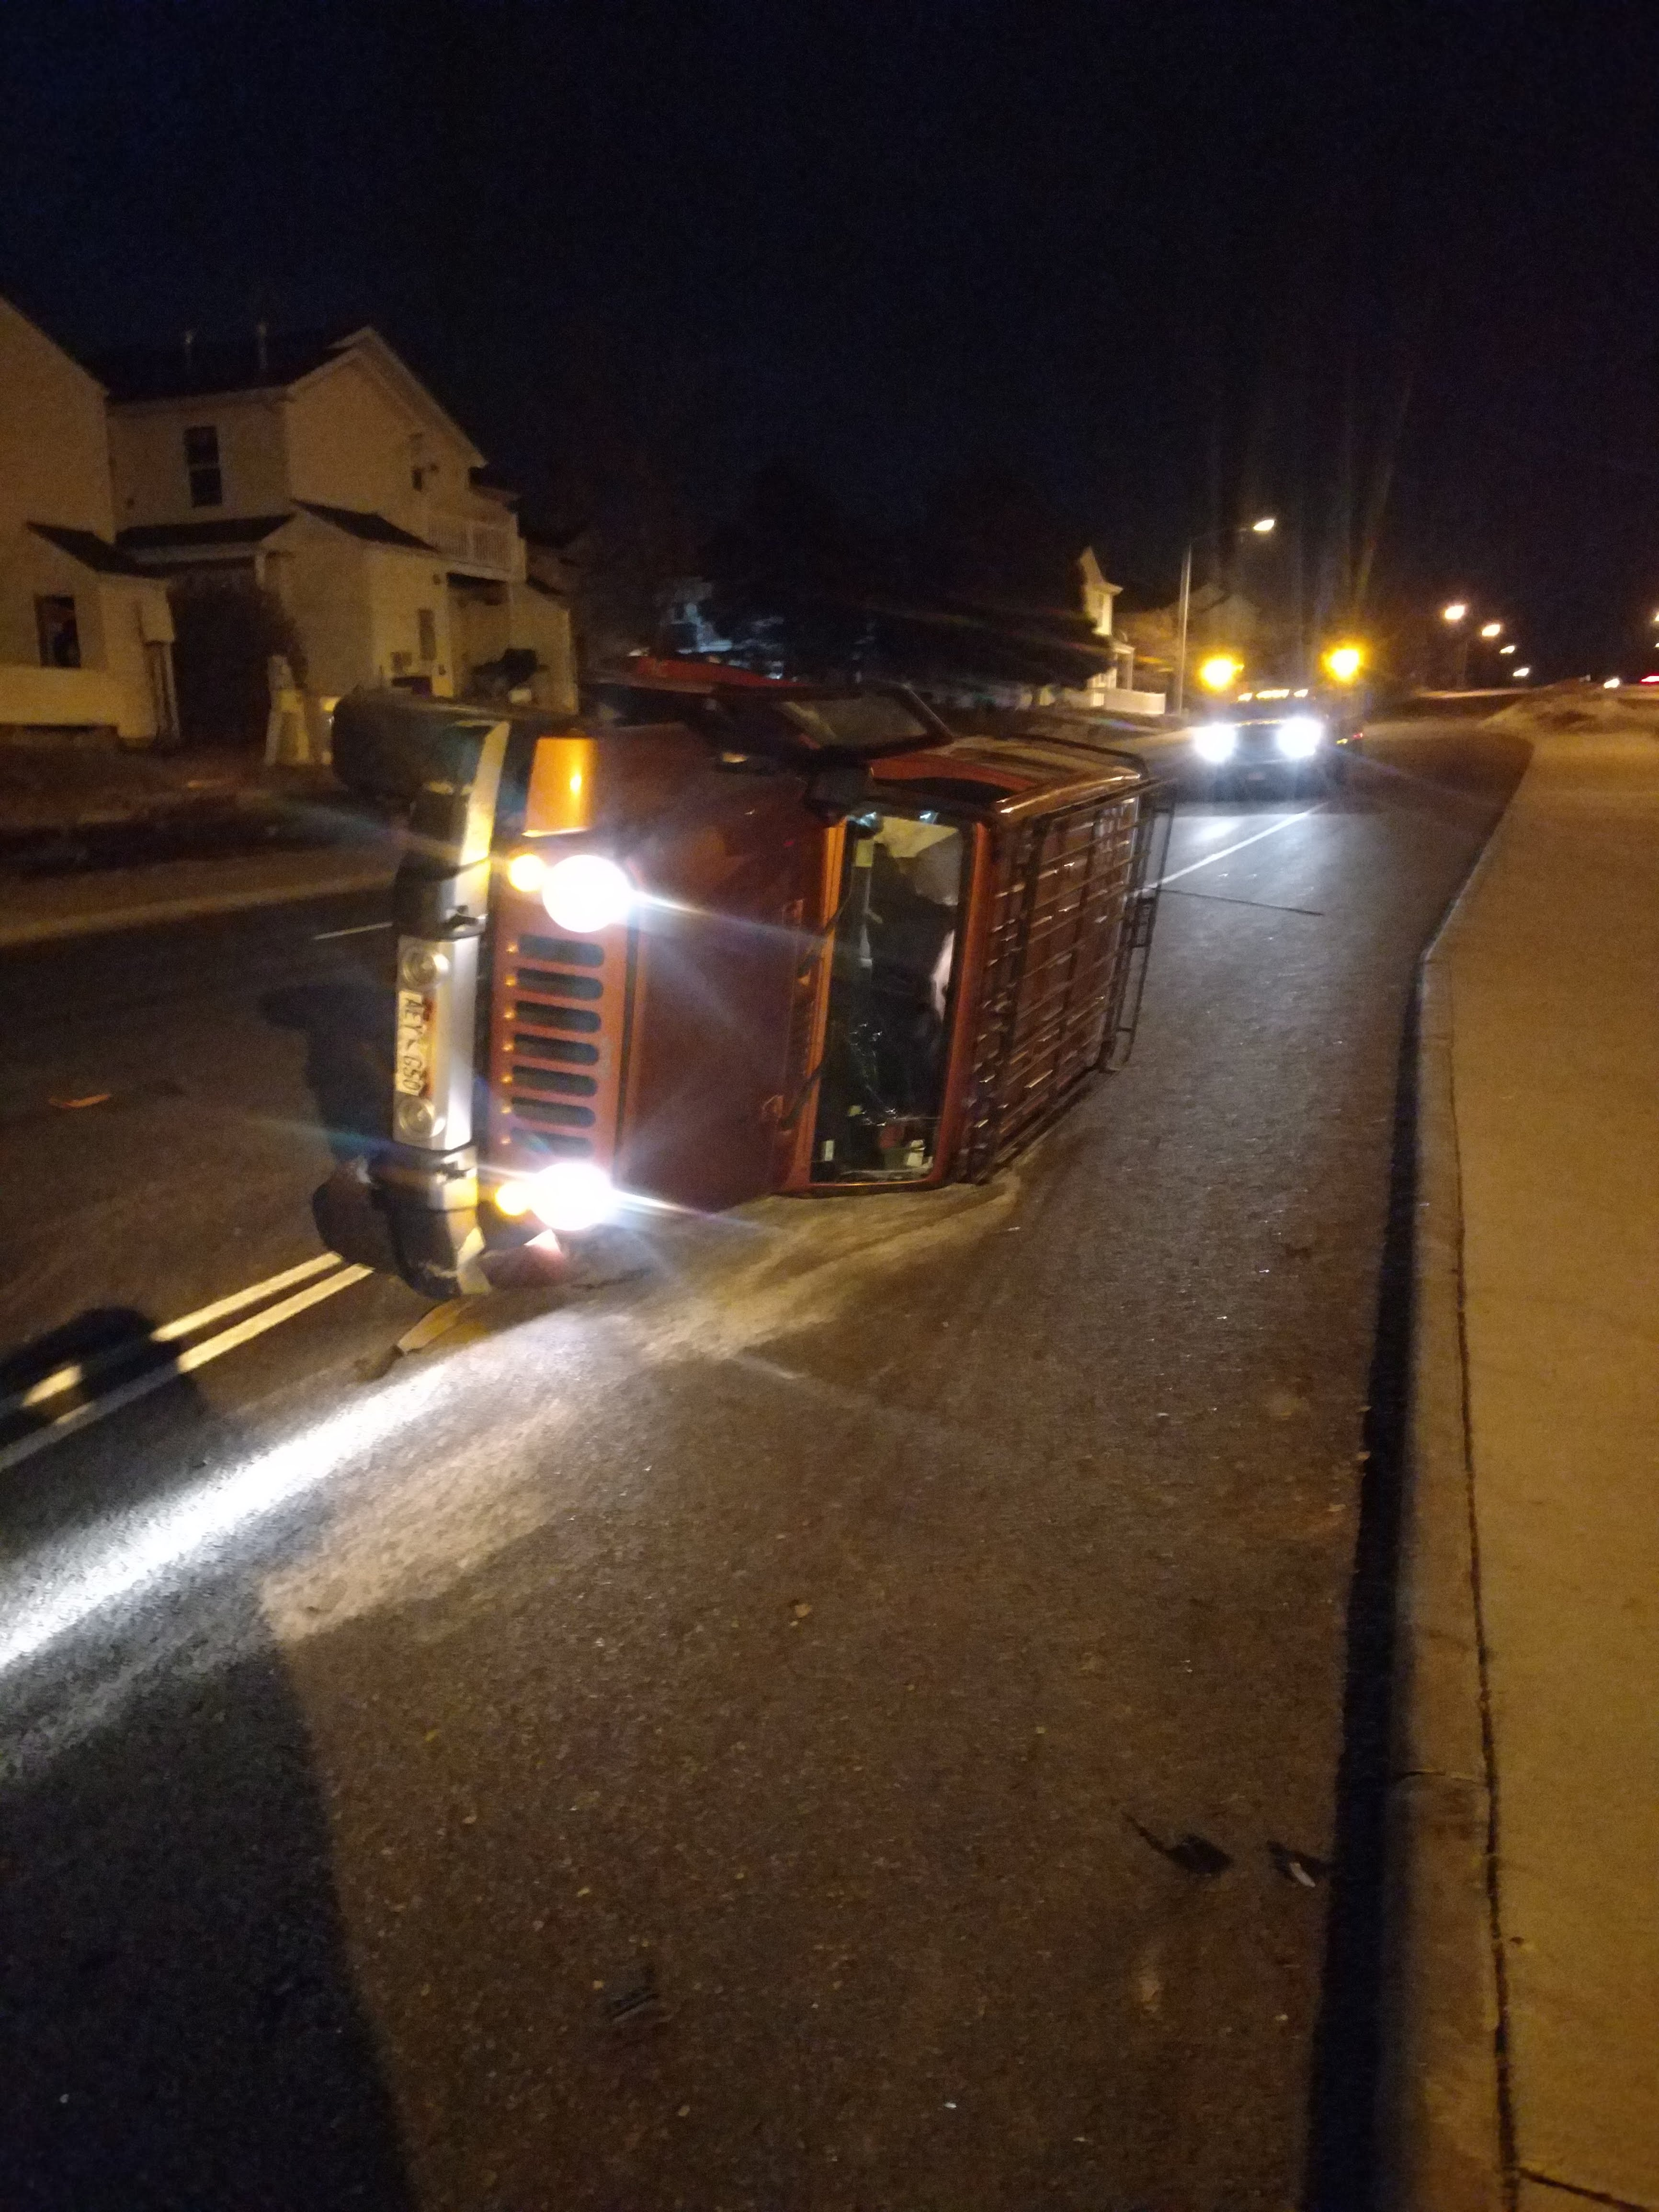 After an incident with a semi over a turn signal being used as an announcement versus a request.